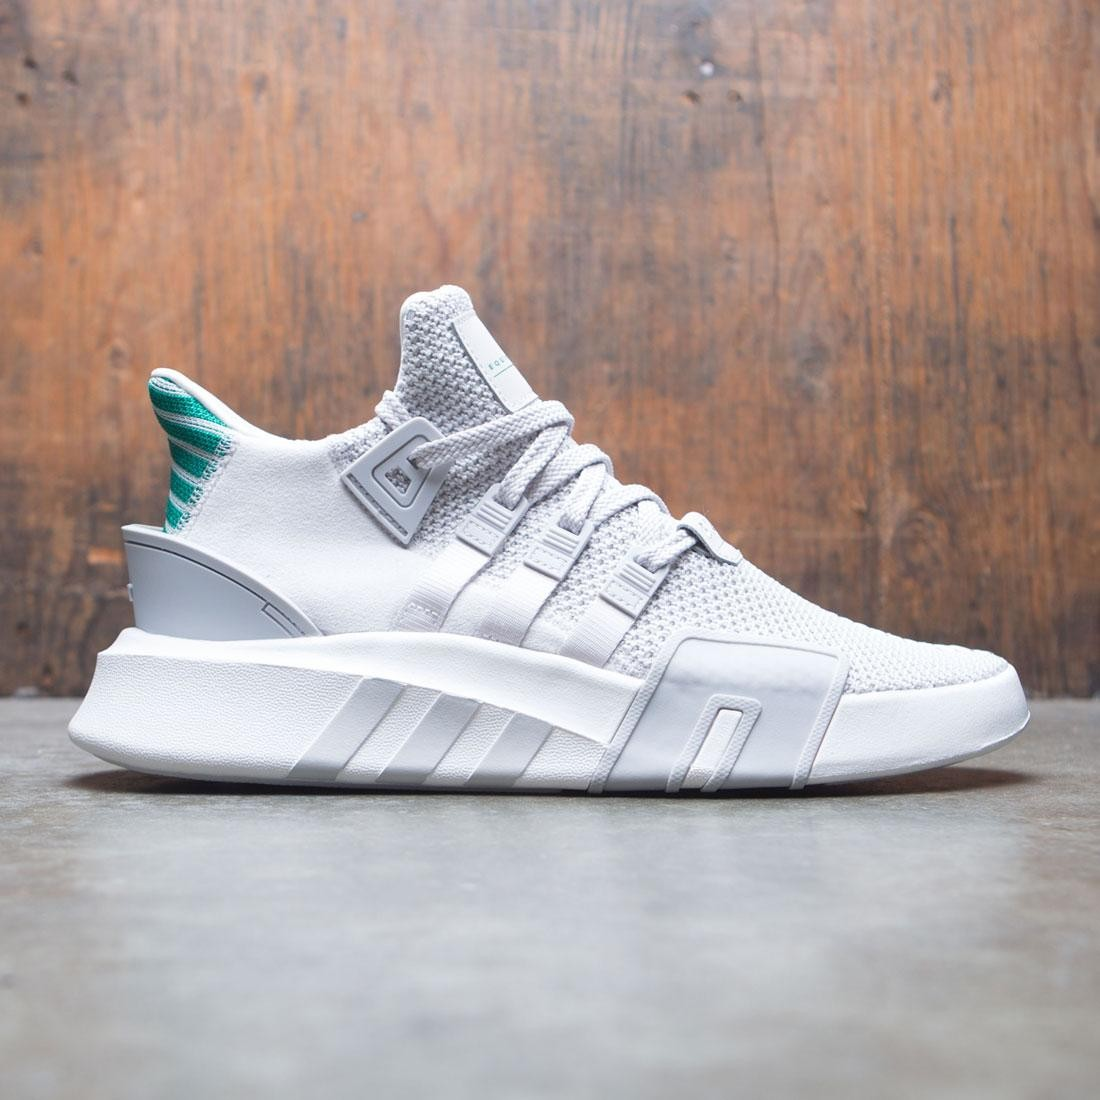 ADIDAS ORIGINALS EQT Bask Adv Men's